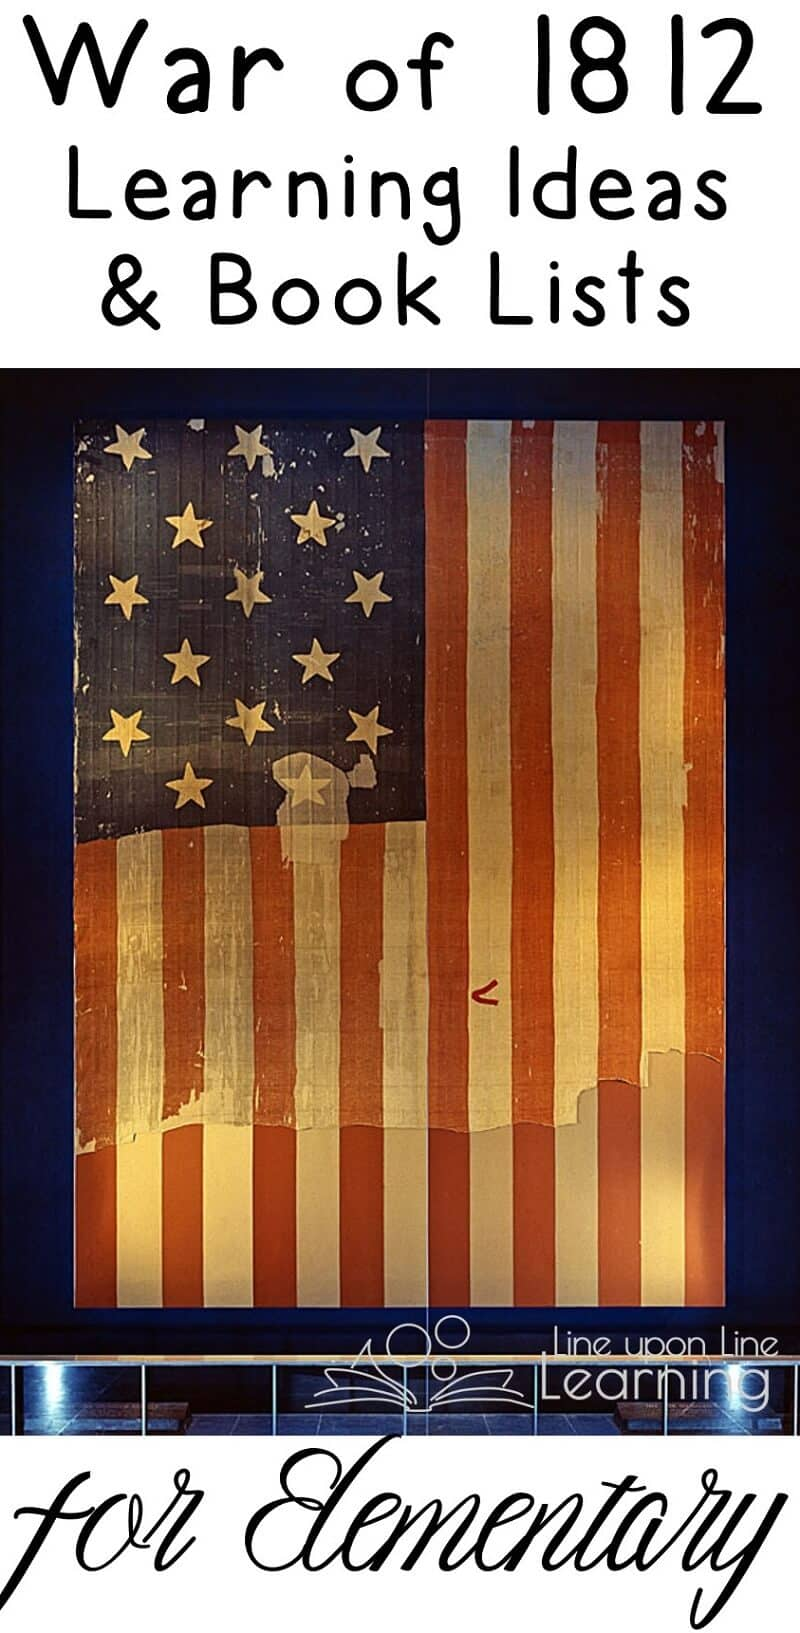 The War of 1812 helped the fledgling United States prove that it was here to stay, despite the burning of Washington D.C. The American flag became a symbol for the Nation's resilience and survival.